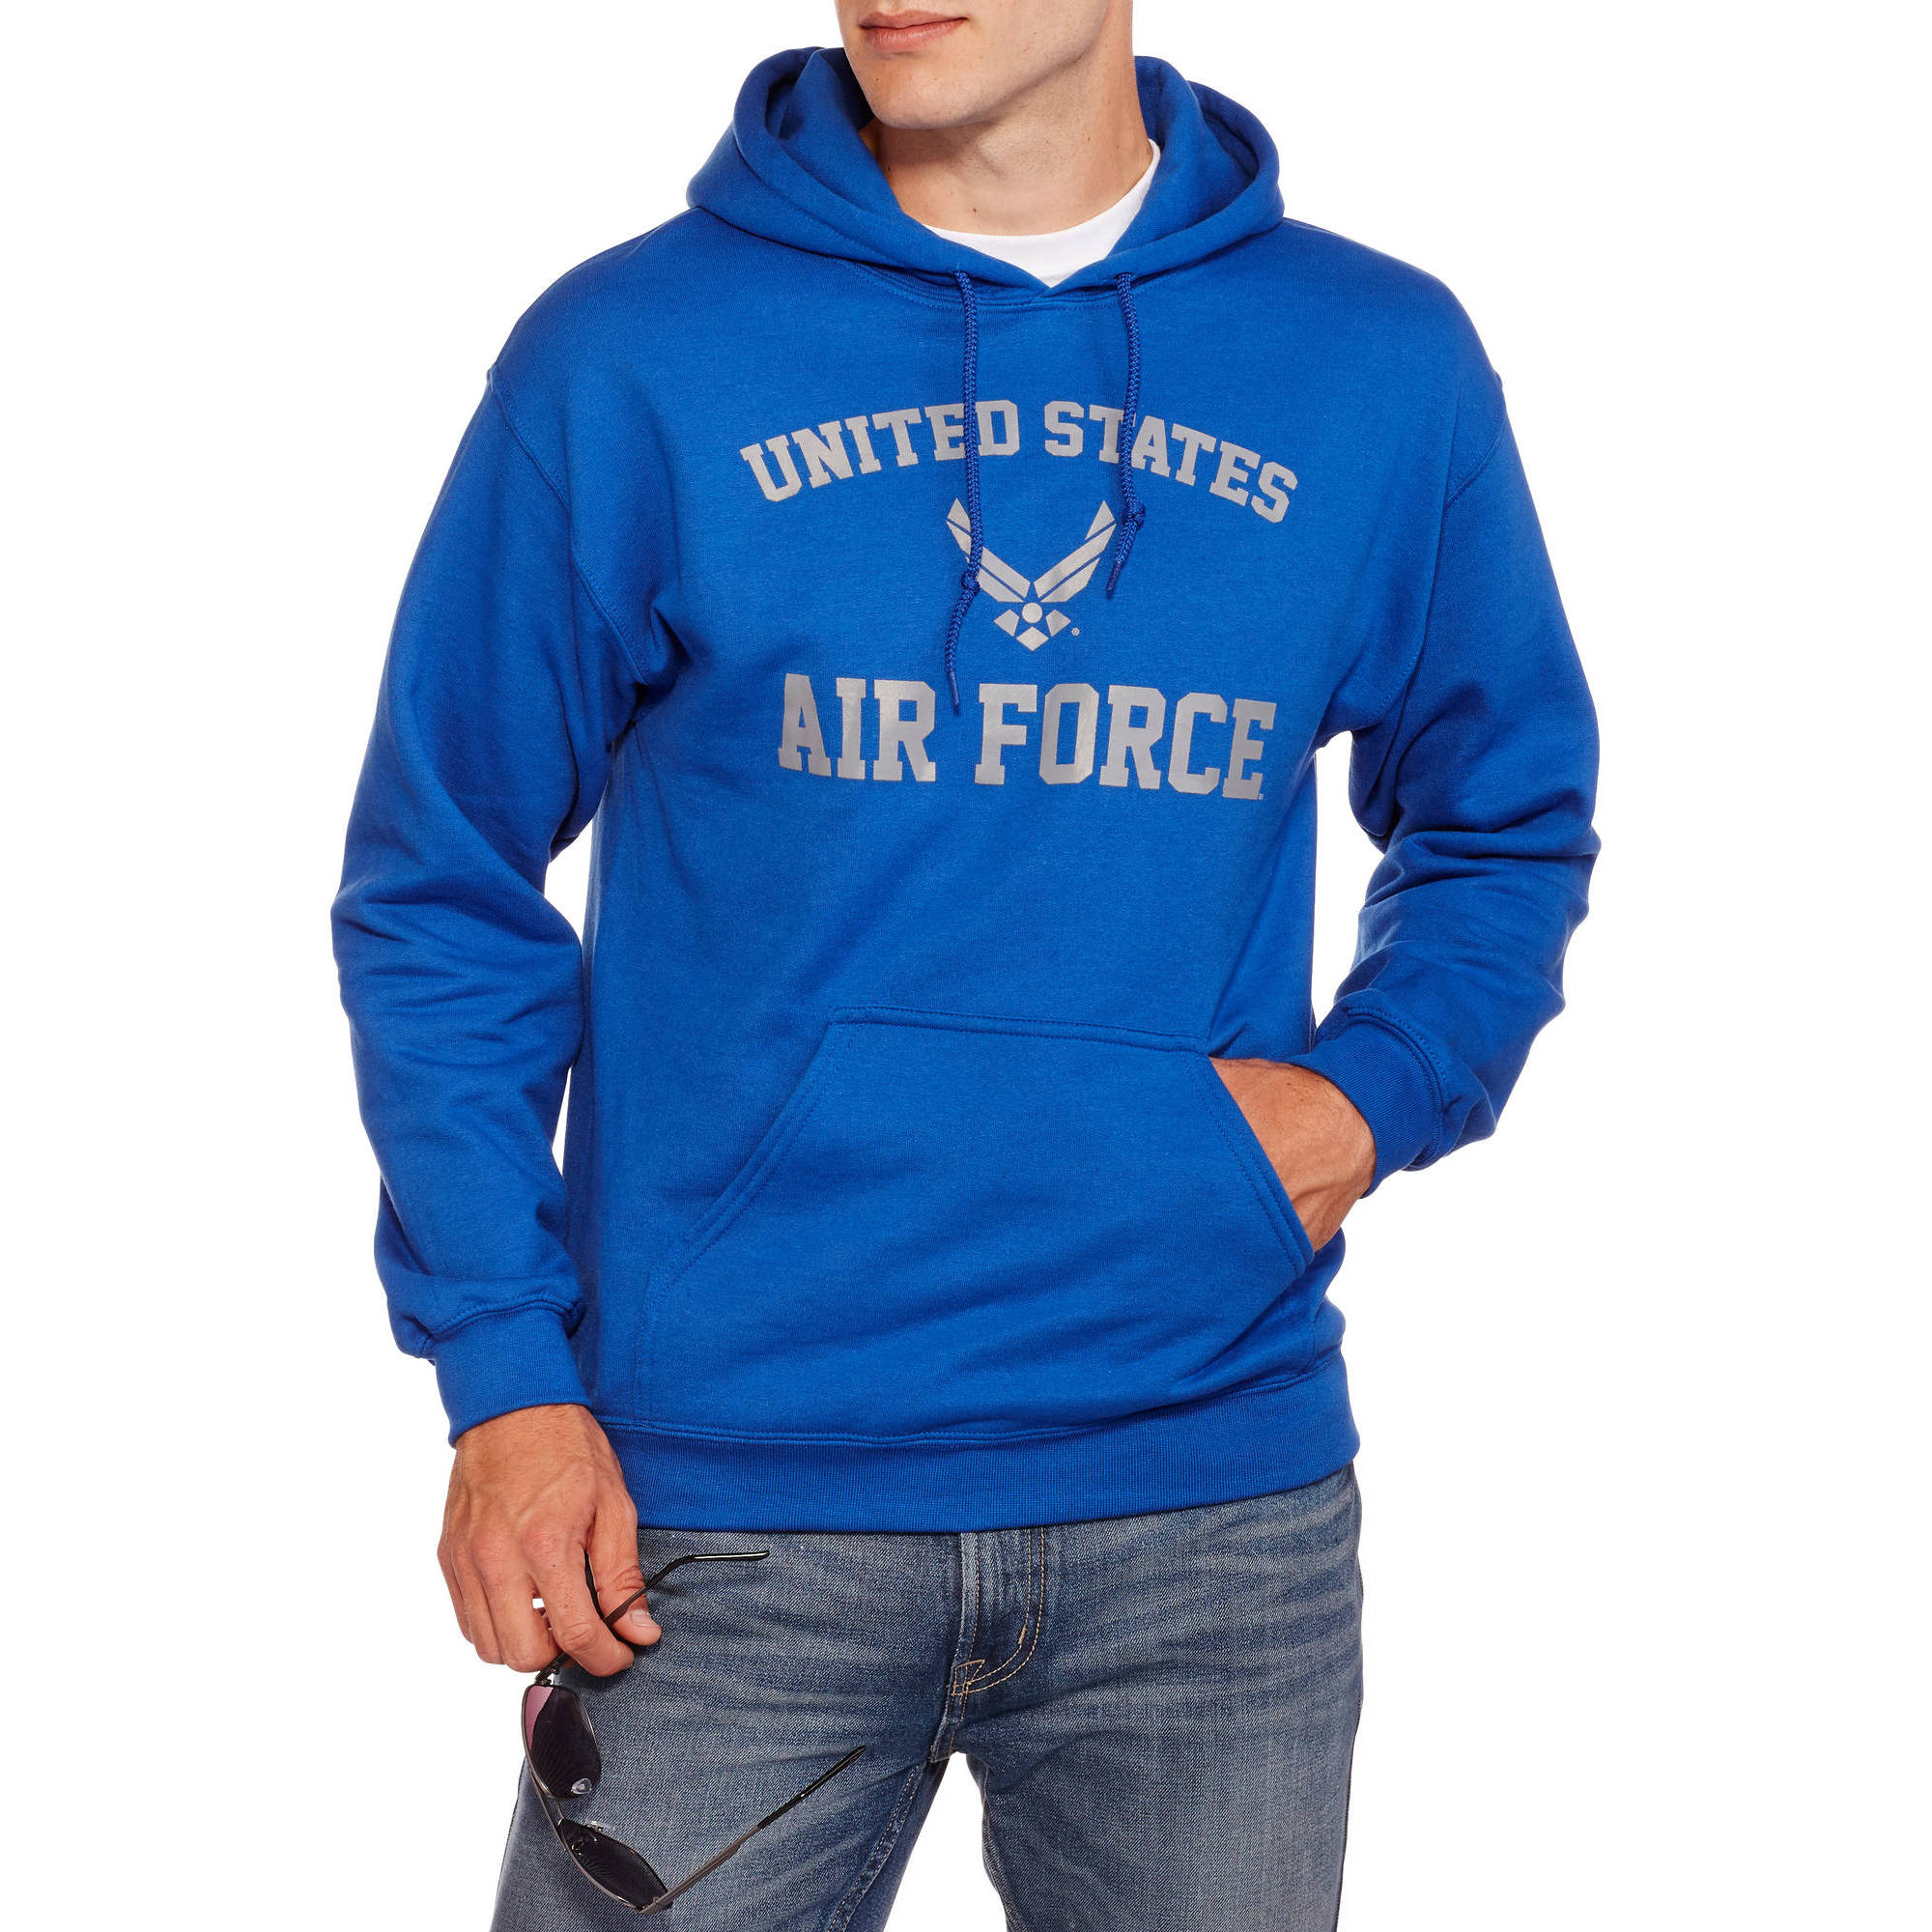 Military Officially Licensed Big Men's Fleece Hoodie, 2XL